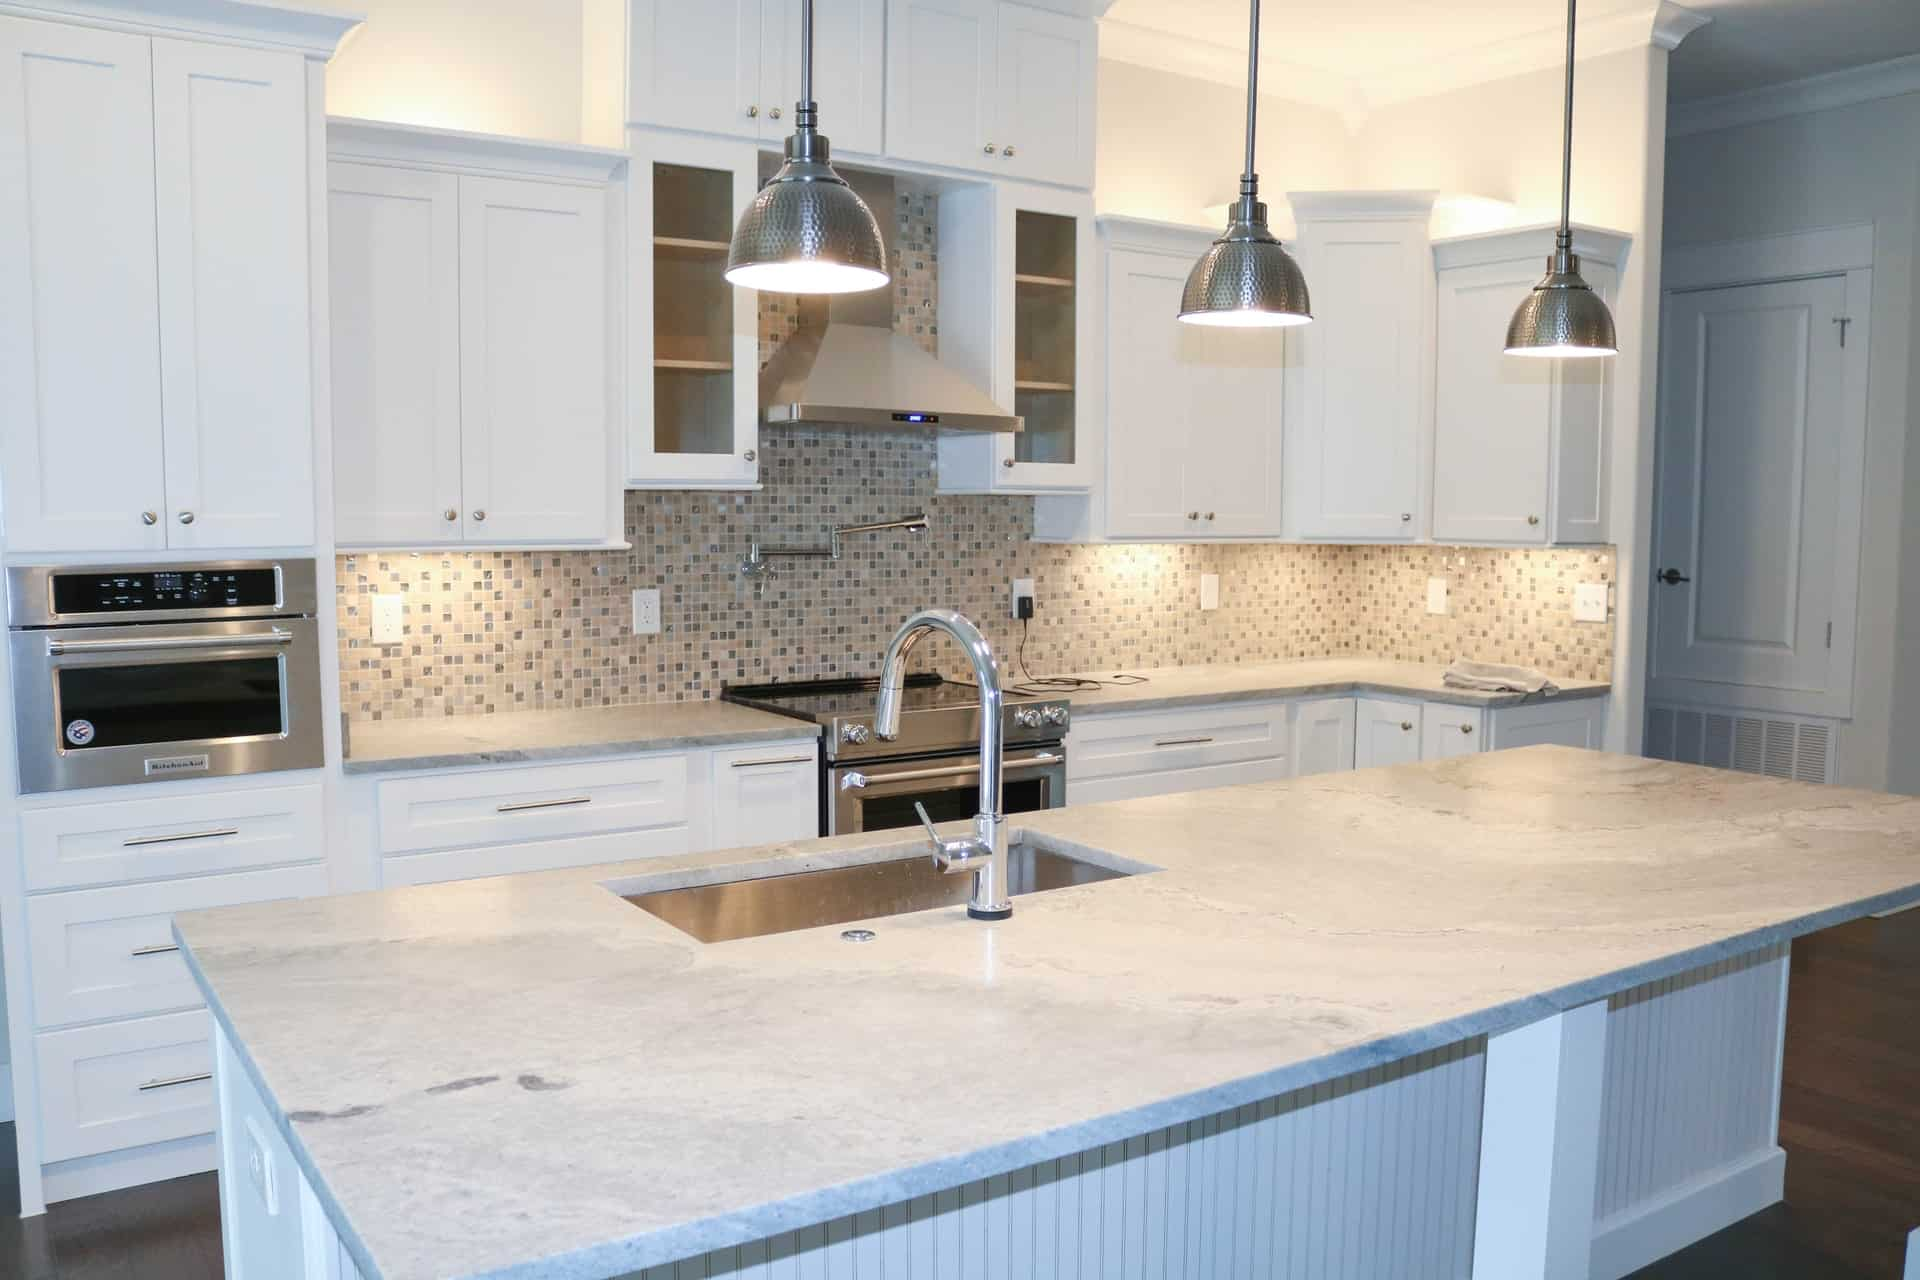 A white modern kitchen with hanging lights, a modern faucet and sink